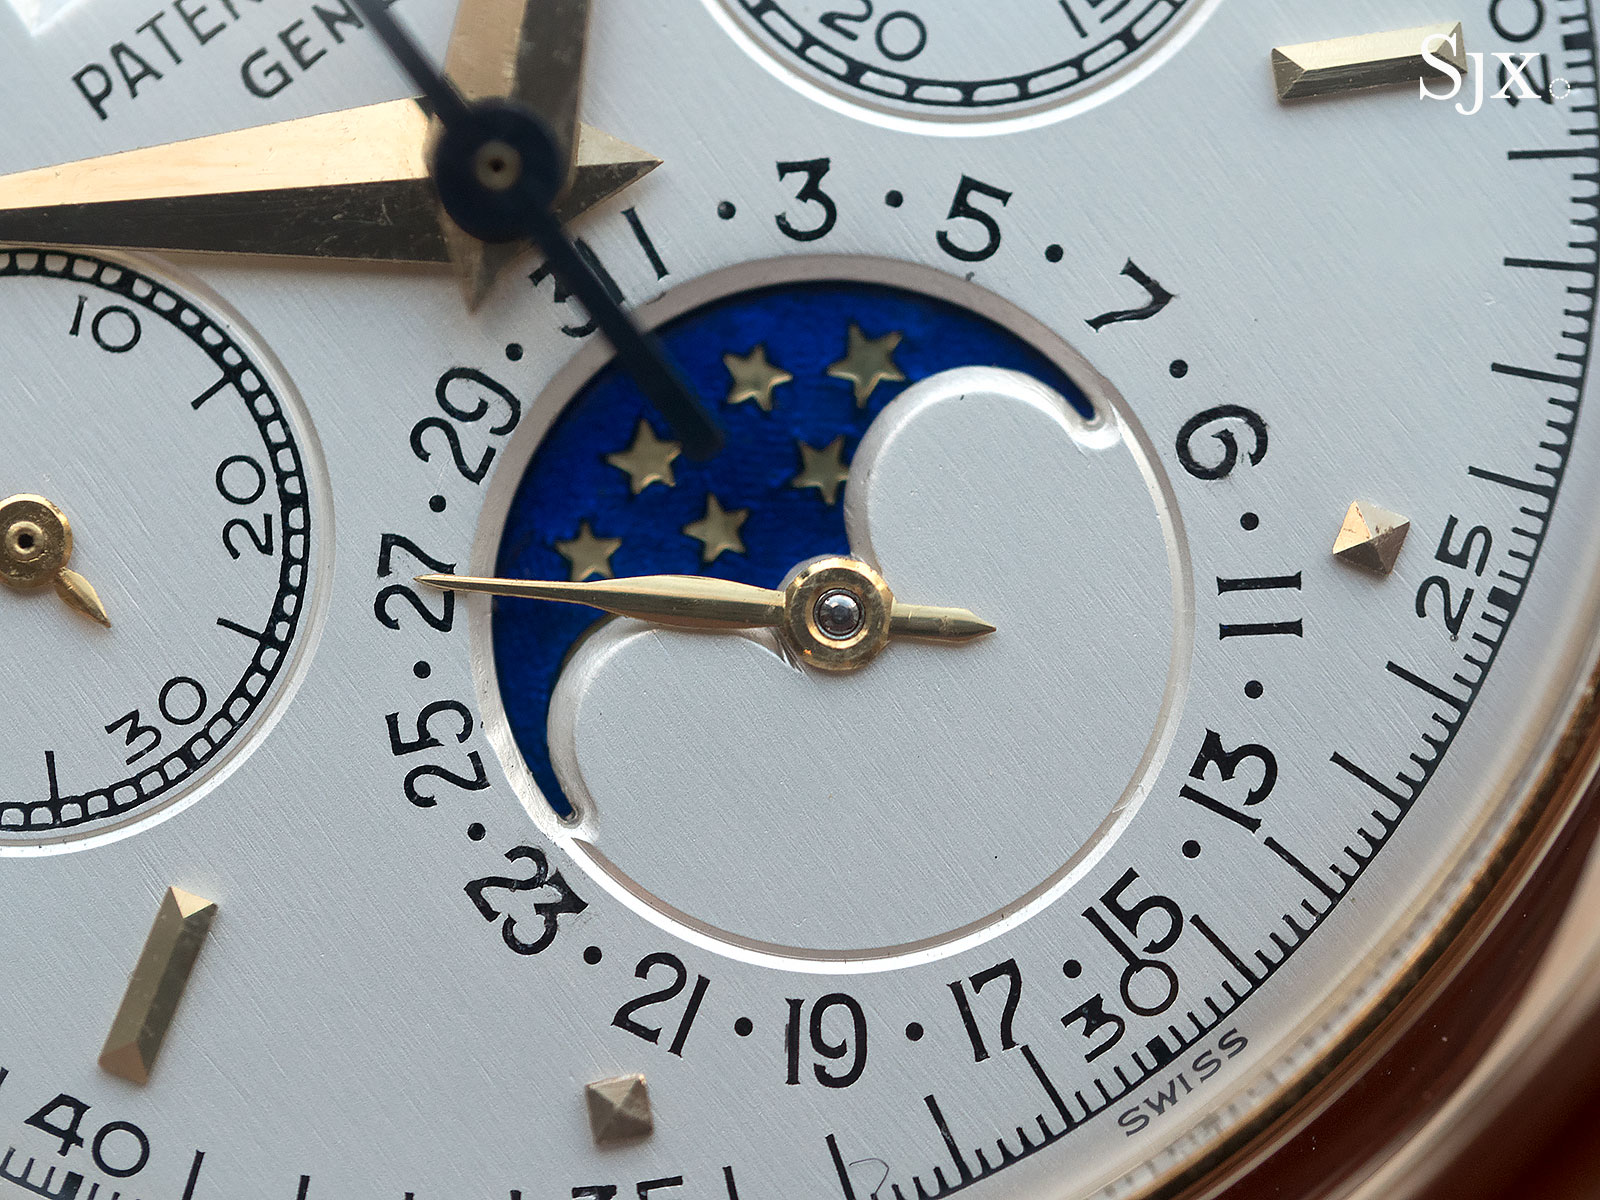 Patek Philippe 2499 third series yellow gold 4